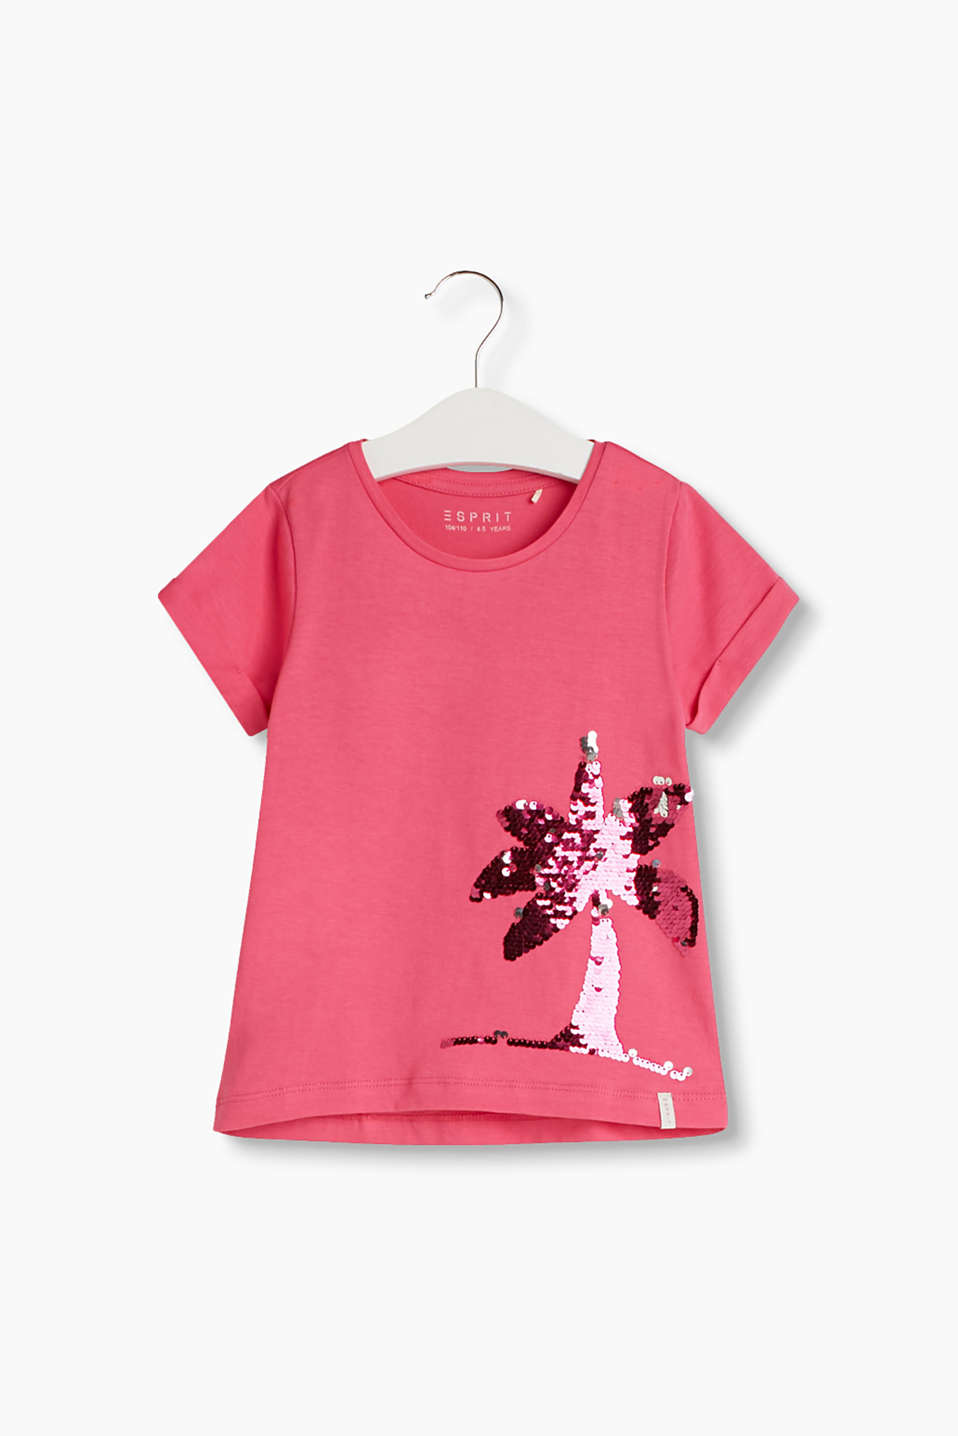 Esprit t shirt with colour changing sequins at our for Sequin t shirt changing